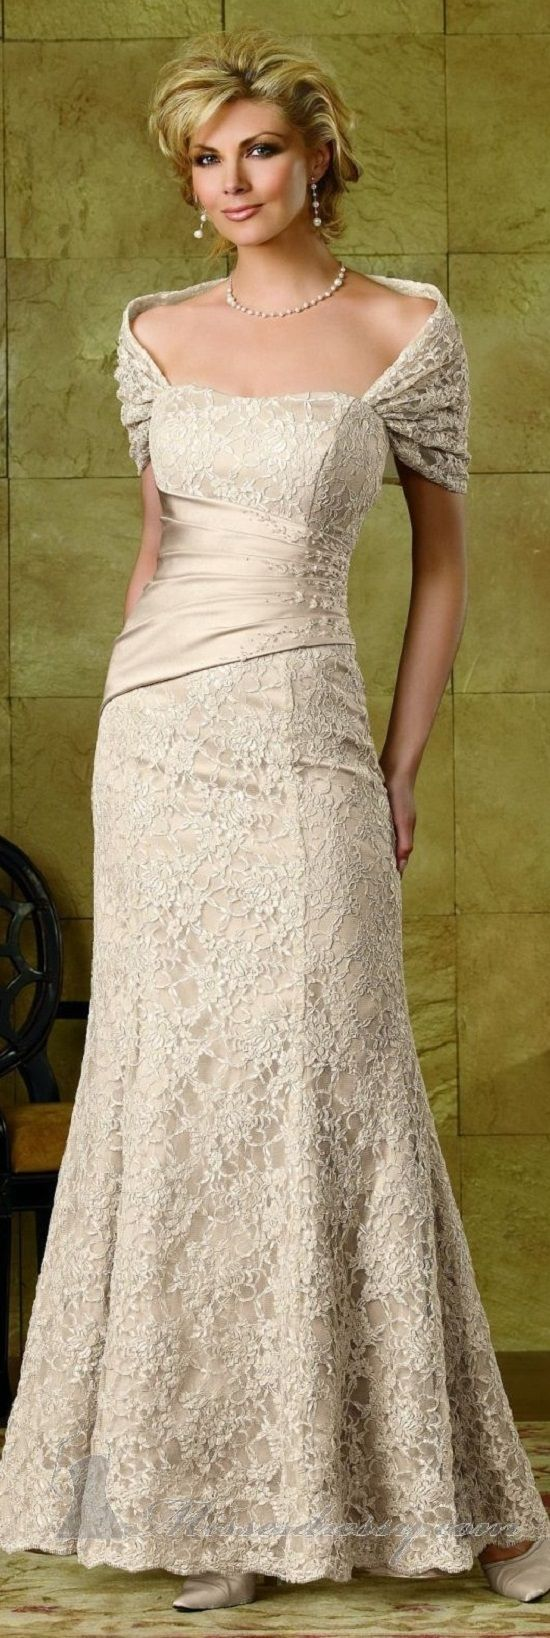 Wedding gowns for older brides over 40 a formal affair for Wedding dresses for over 40